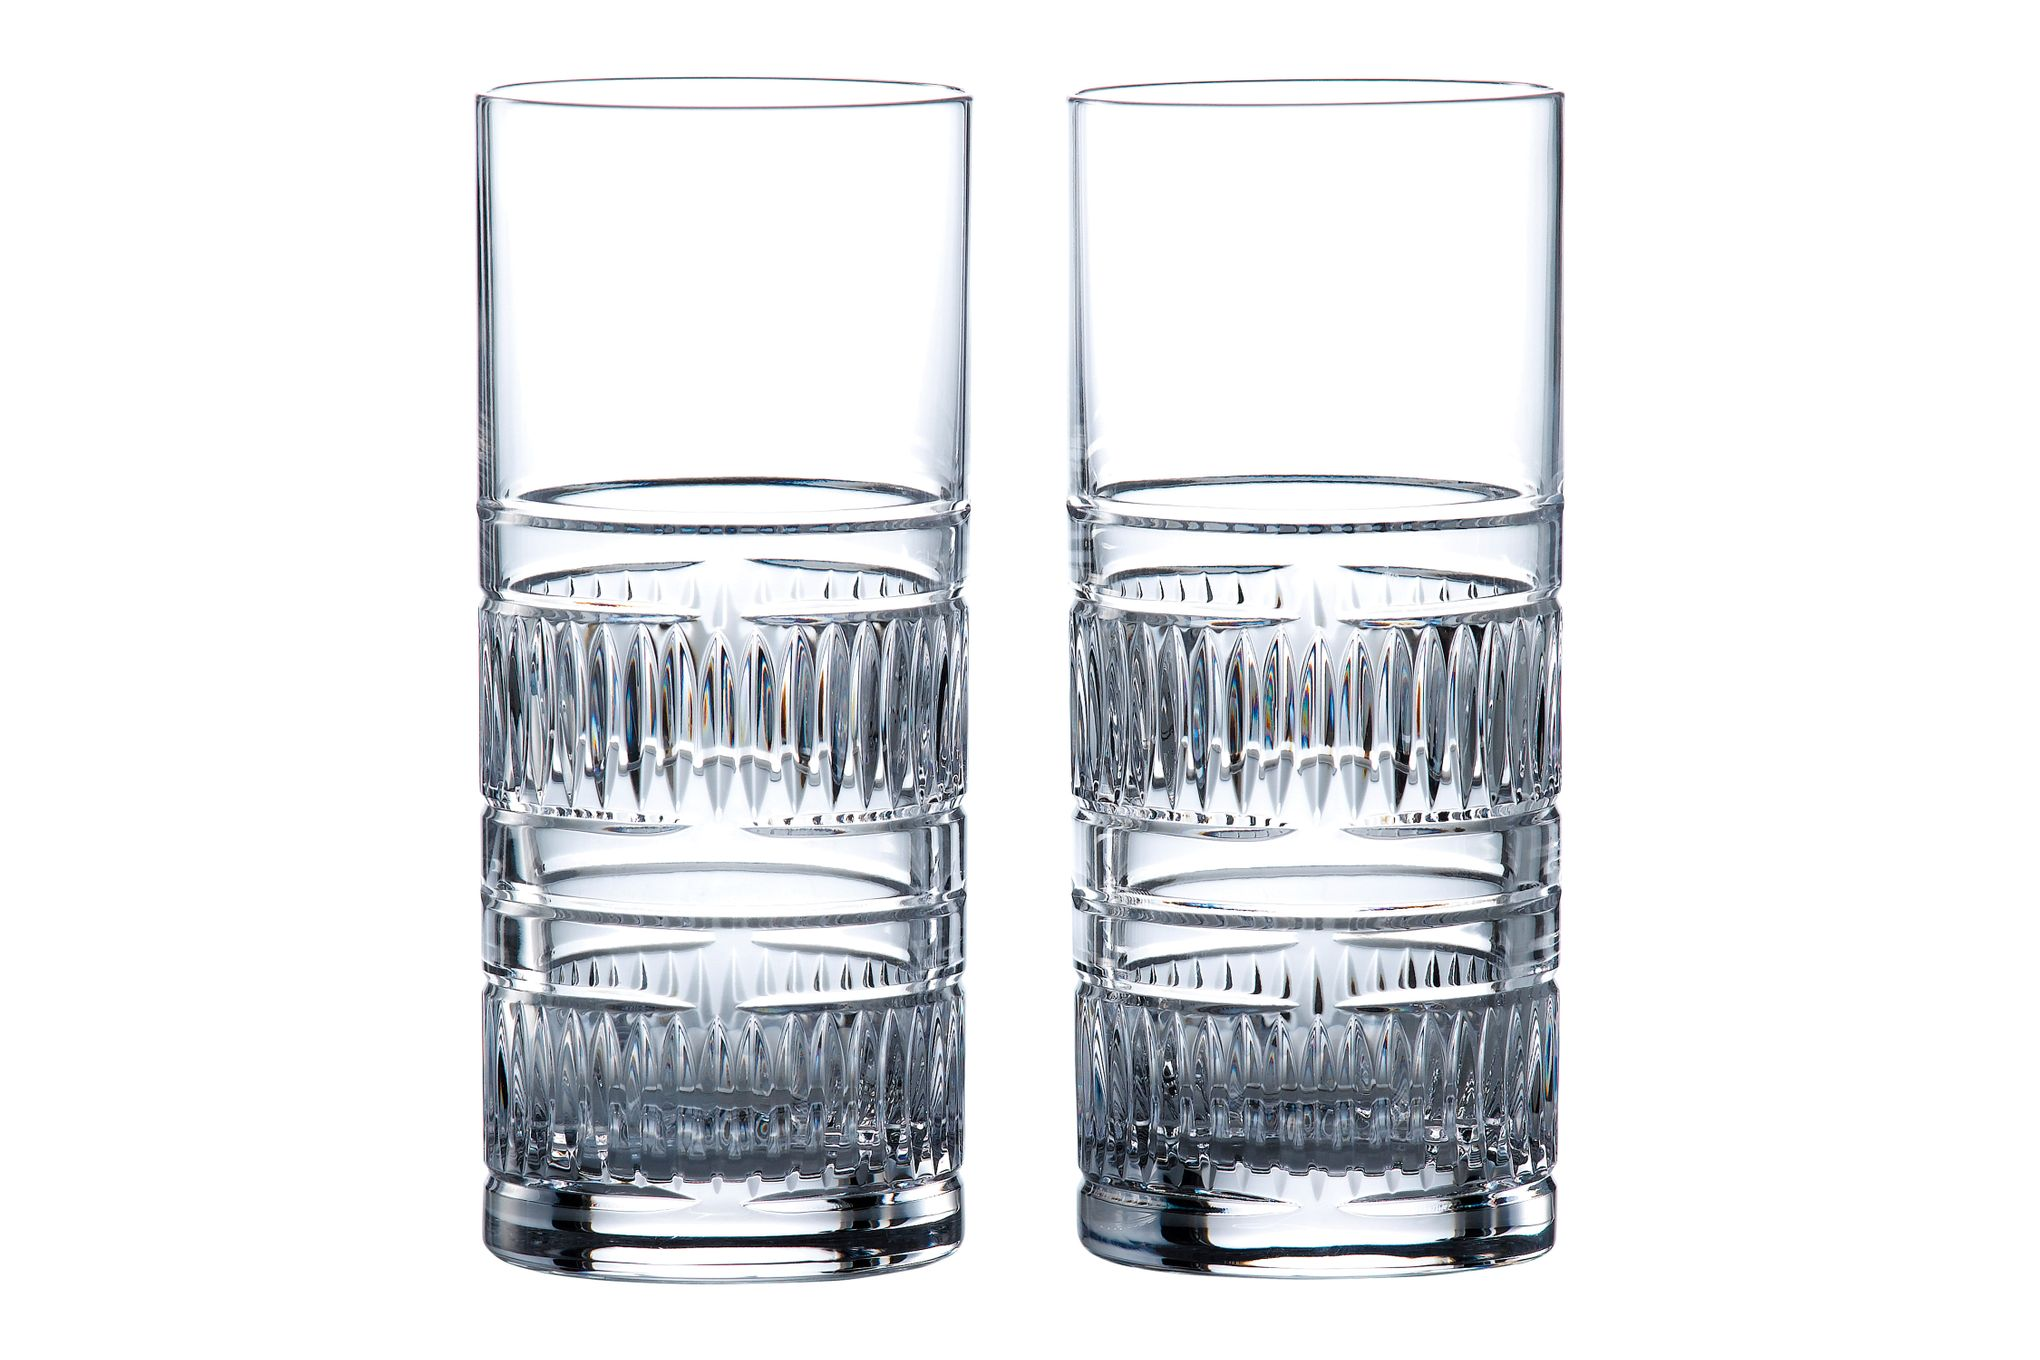 Royal Doulton Radial Pair of Highballs 320ml thumb 1